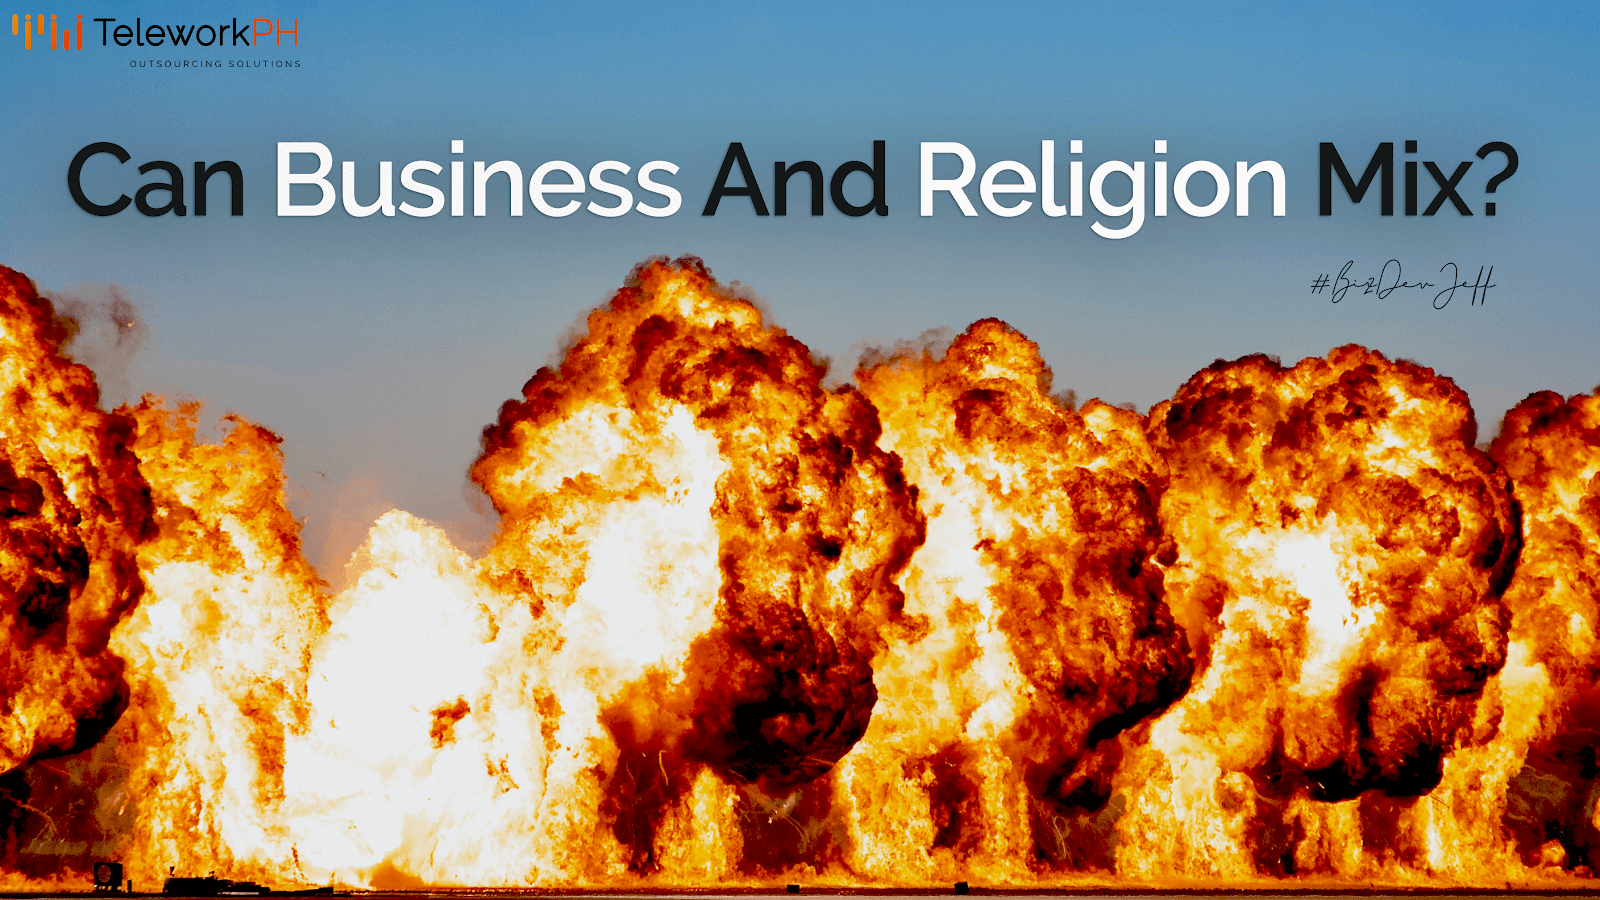 teleworkph-Orange-Juice-And-Gasoline-Can-Business-And-Religion-Mix